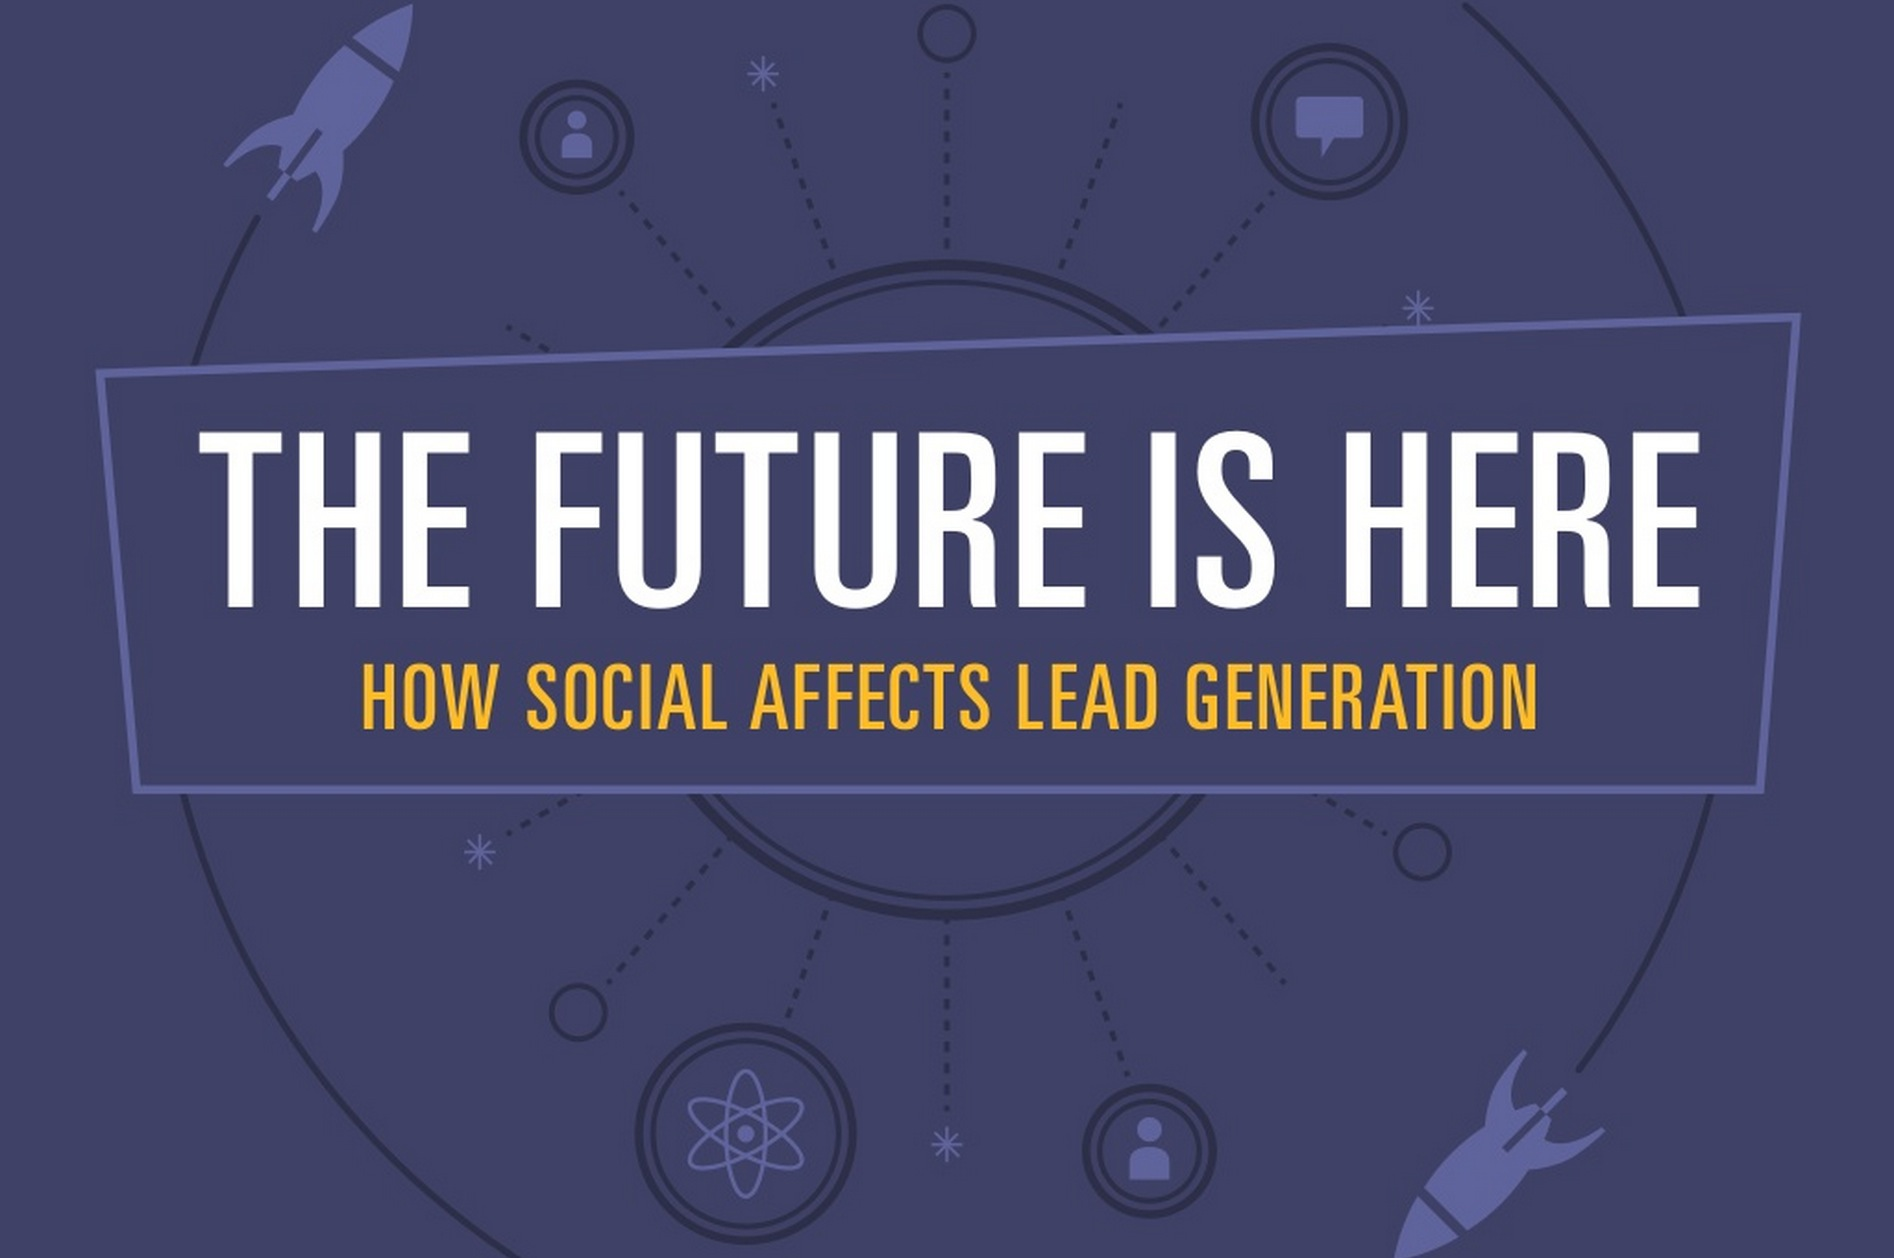 Presentation Design: How Social Affects Lead Generation